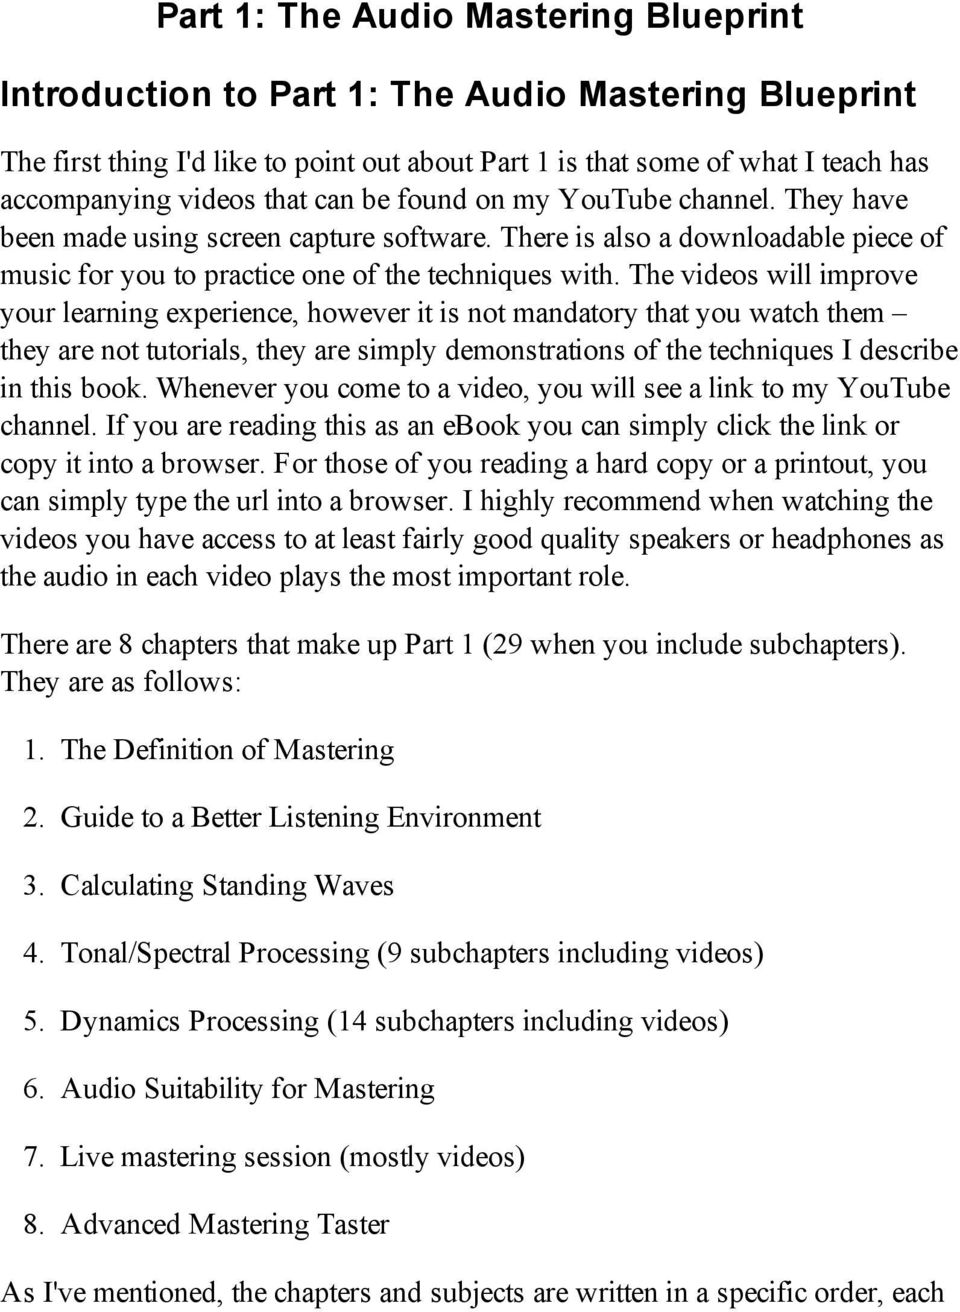 The audio mastering blueprint pdf the videos will improve your learning experience however it is not mandatory that you watch malvernweather Choice Image